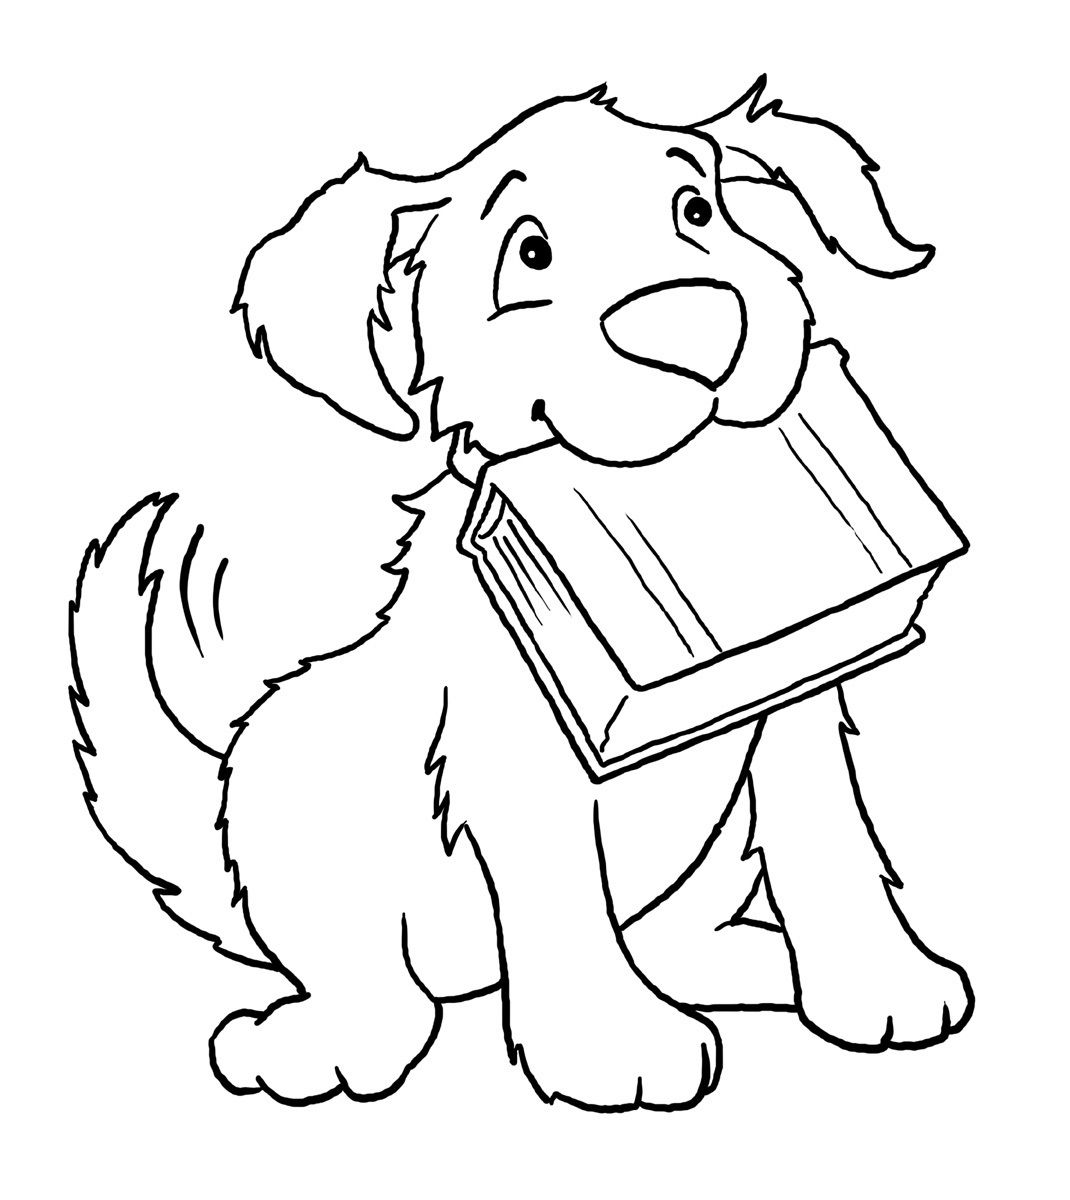 - Coloring Book Pages Printable (With Images) Easy Coloring Pages